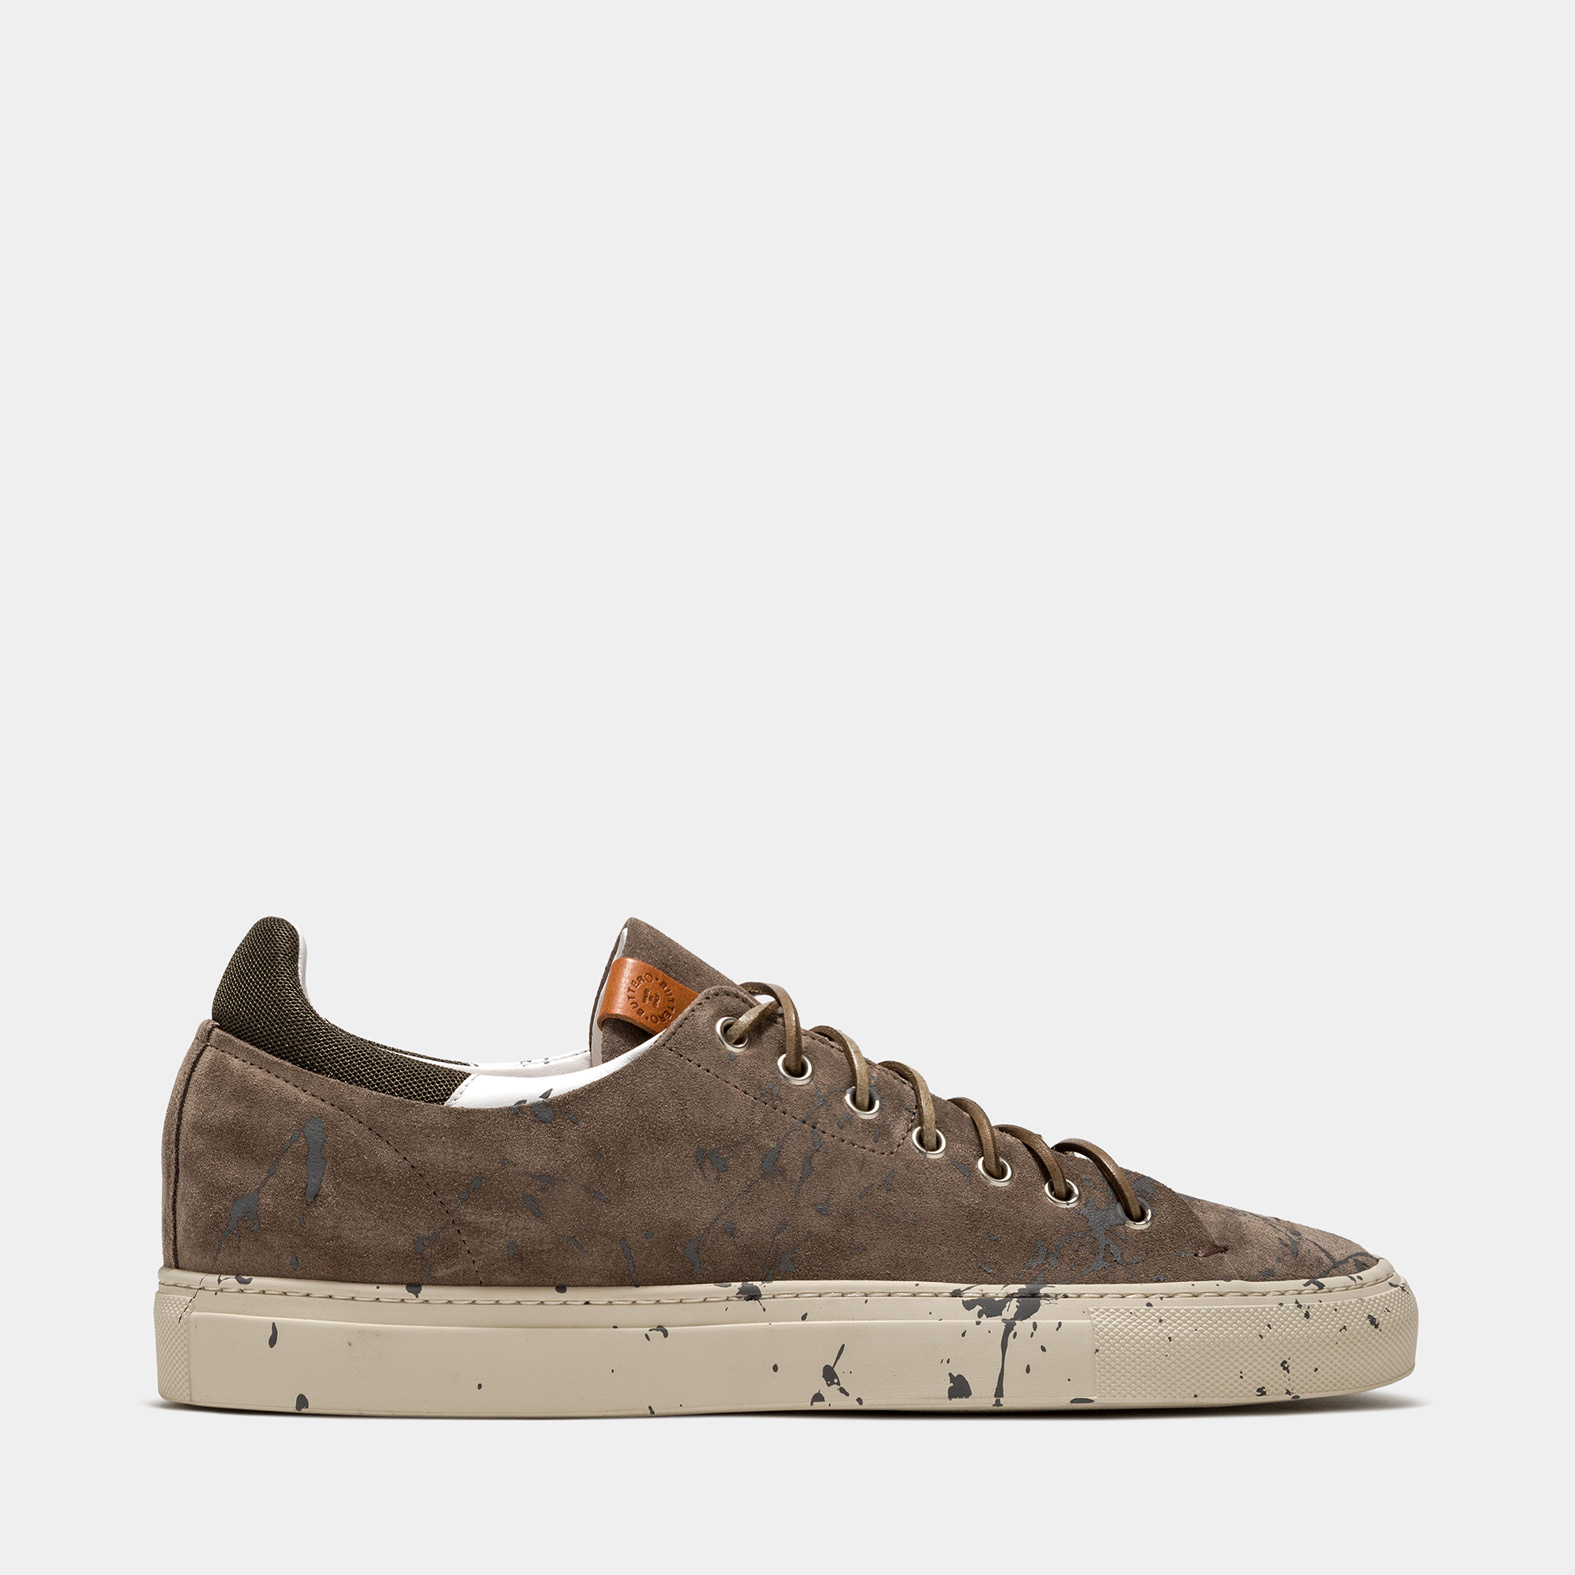 BUTTERO: TANINO SNEAKERS IN TAUPE GRAY SUEDE